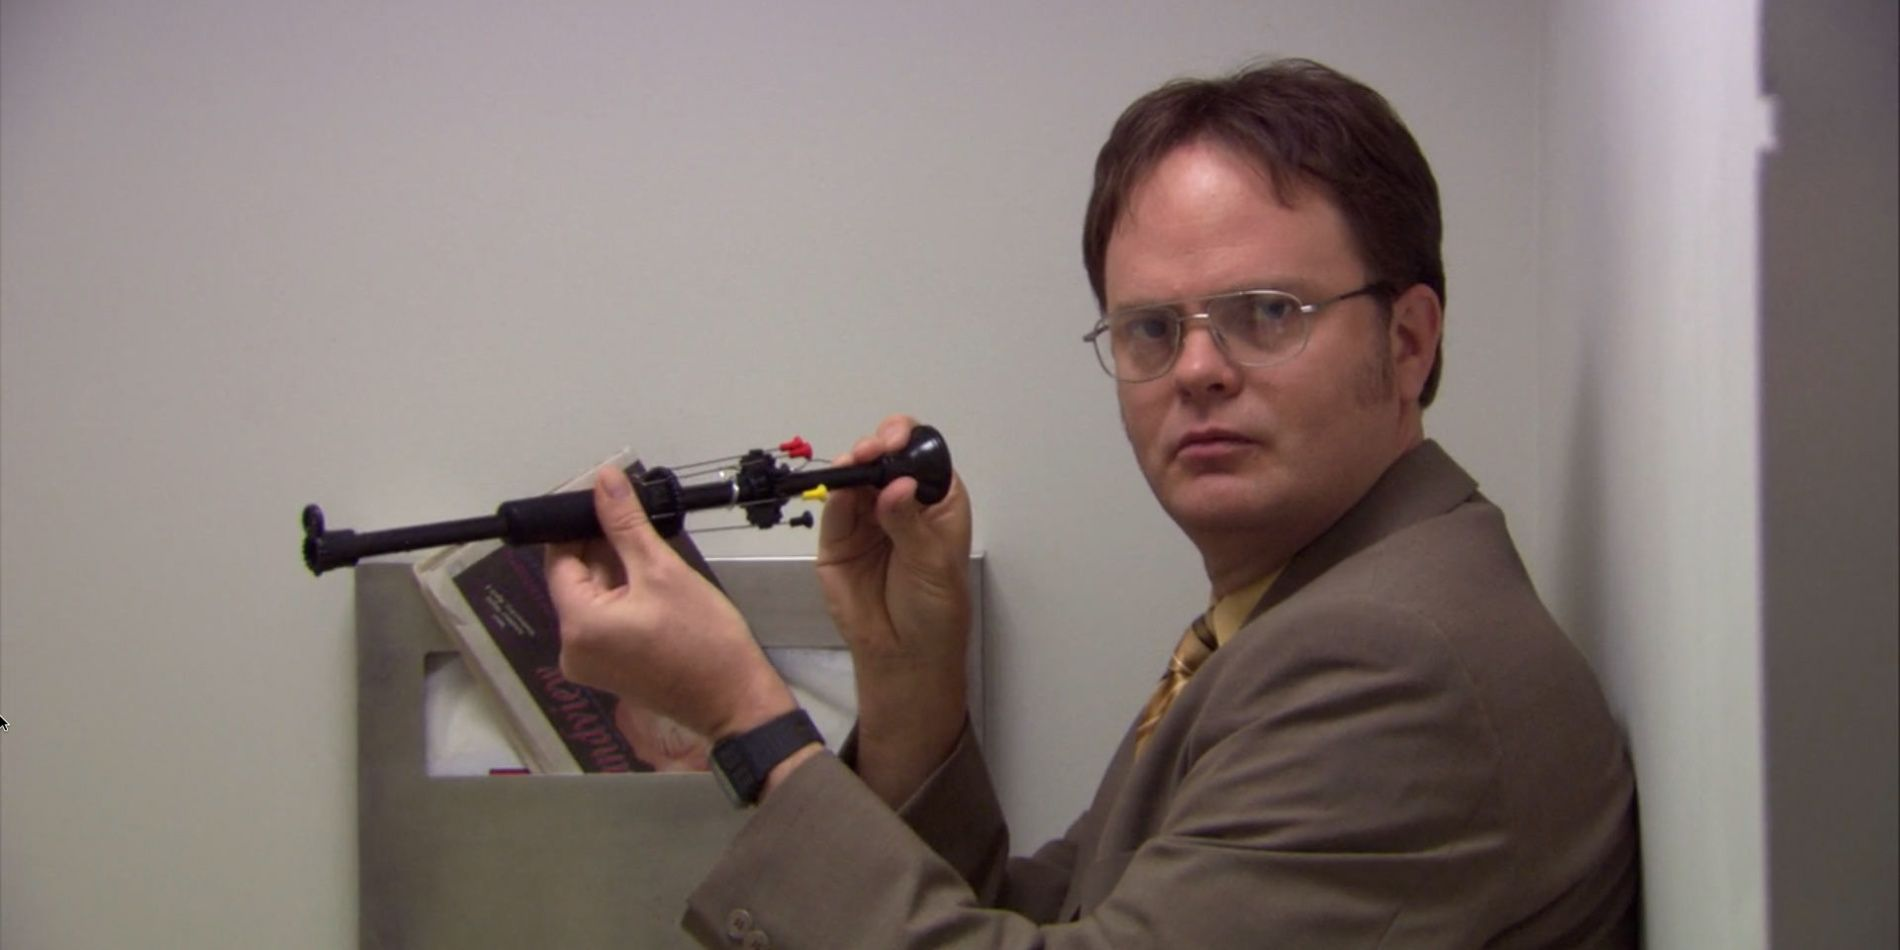 Dwight Schrute's New Funko Pop! Comes With His Own Dwight